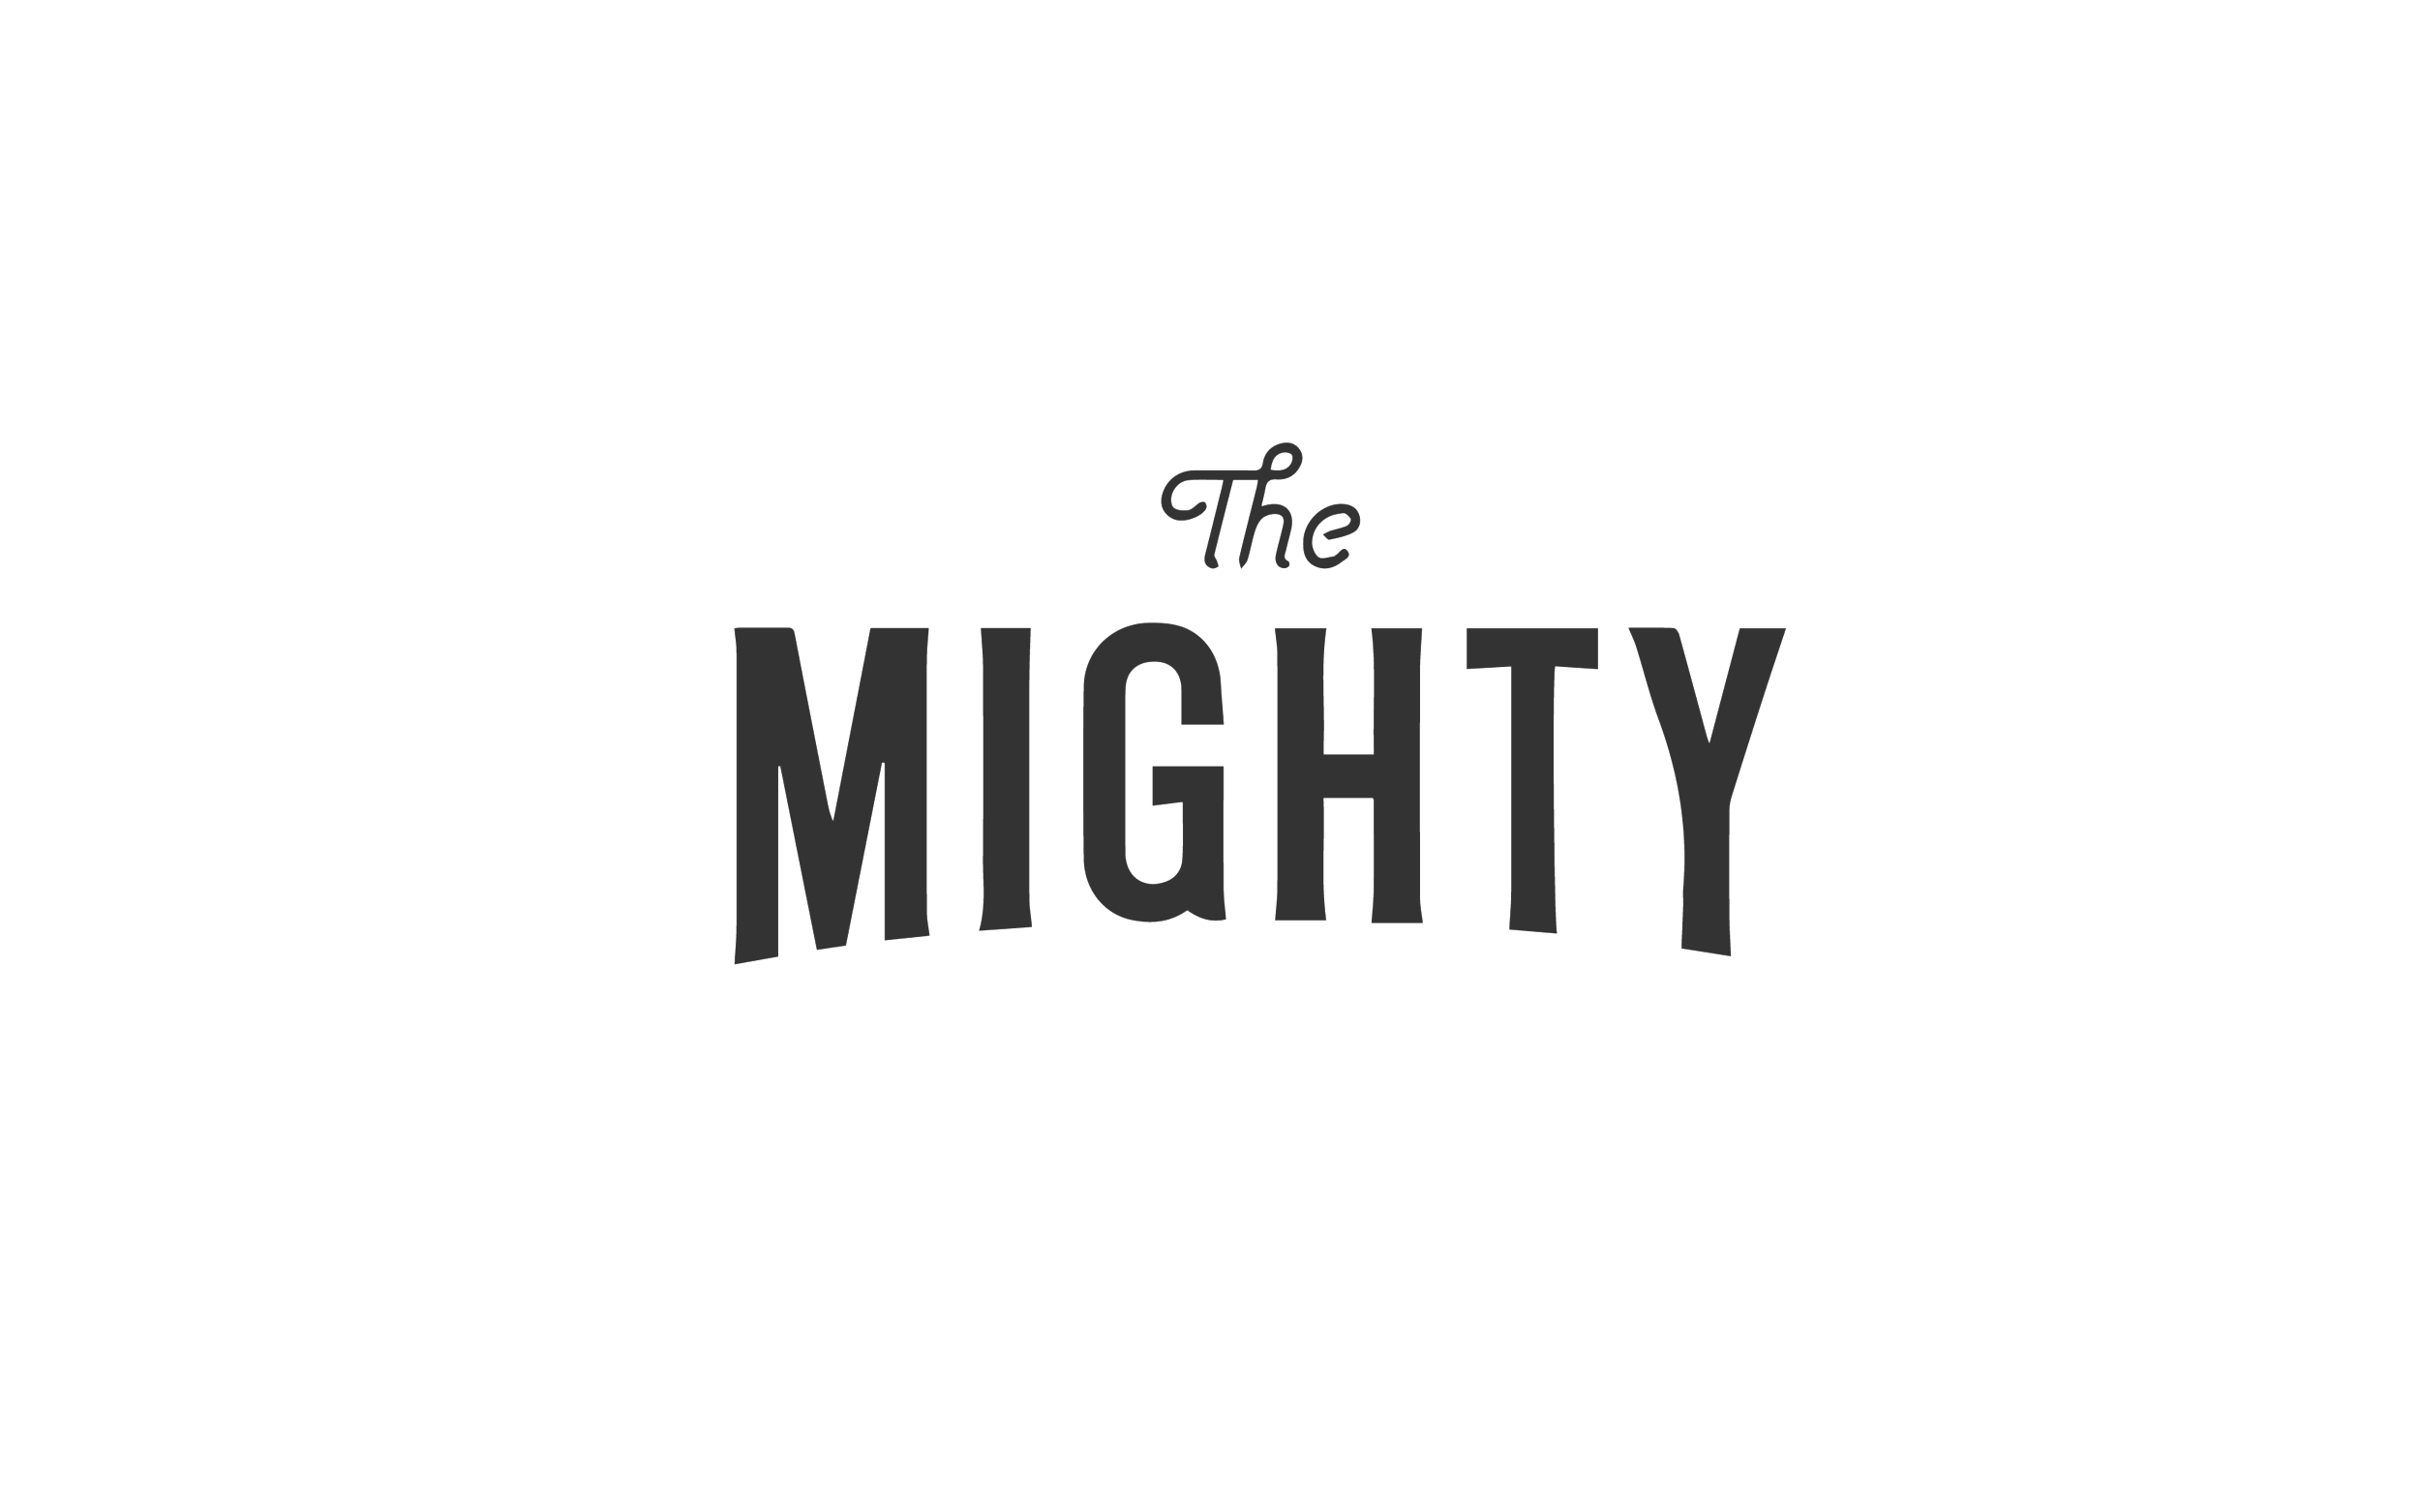 the mighty press-logo.png